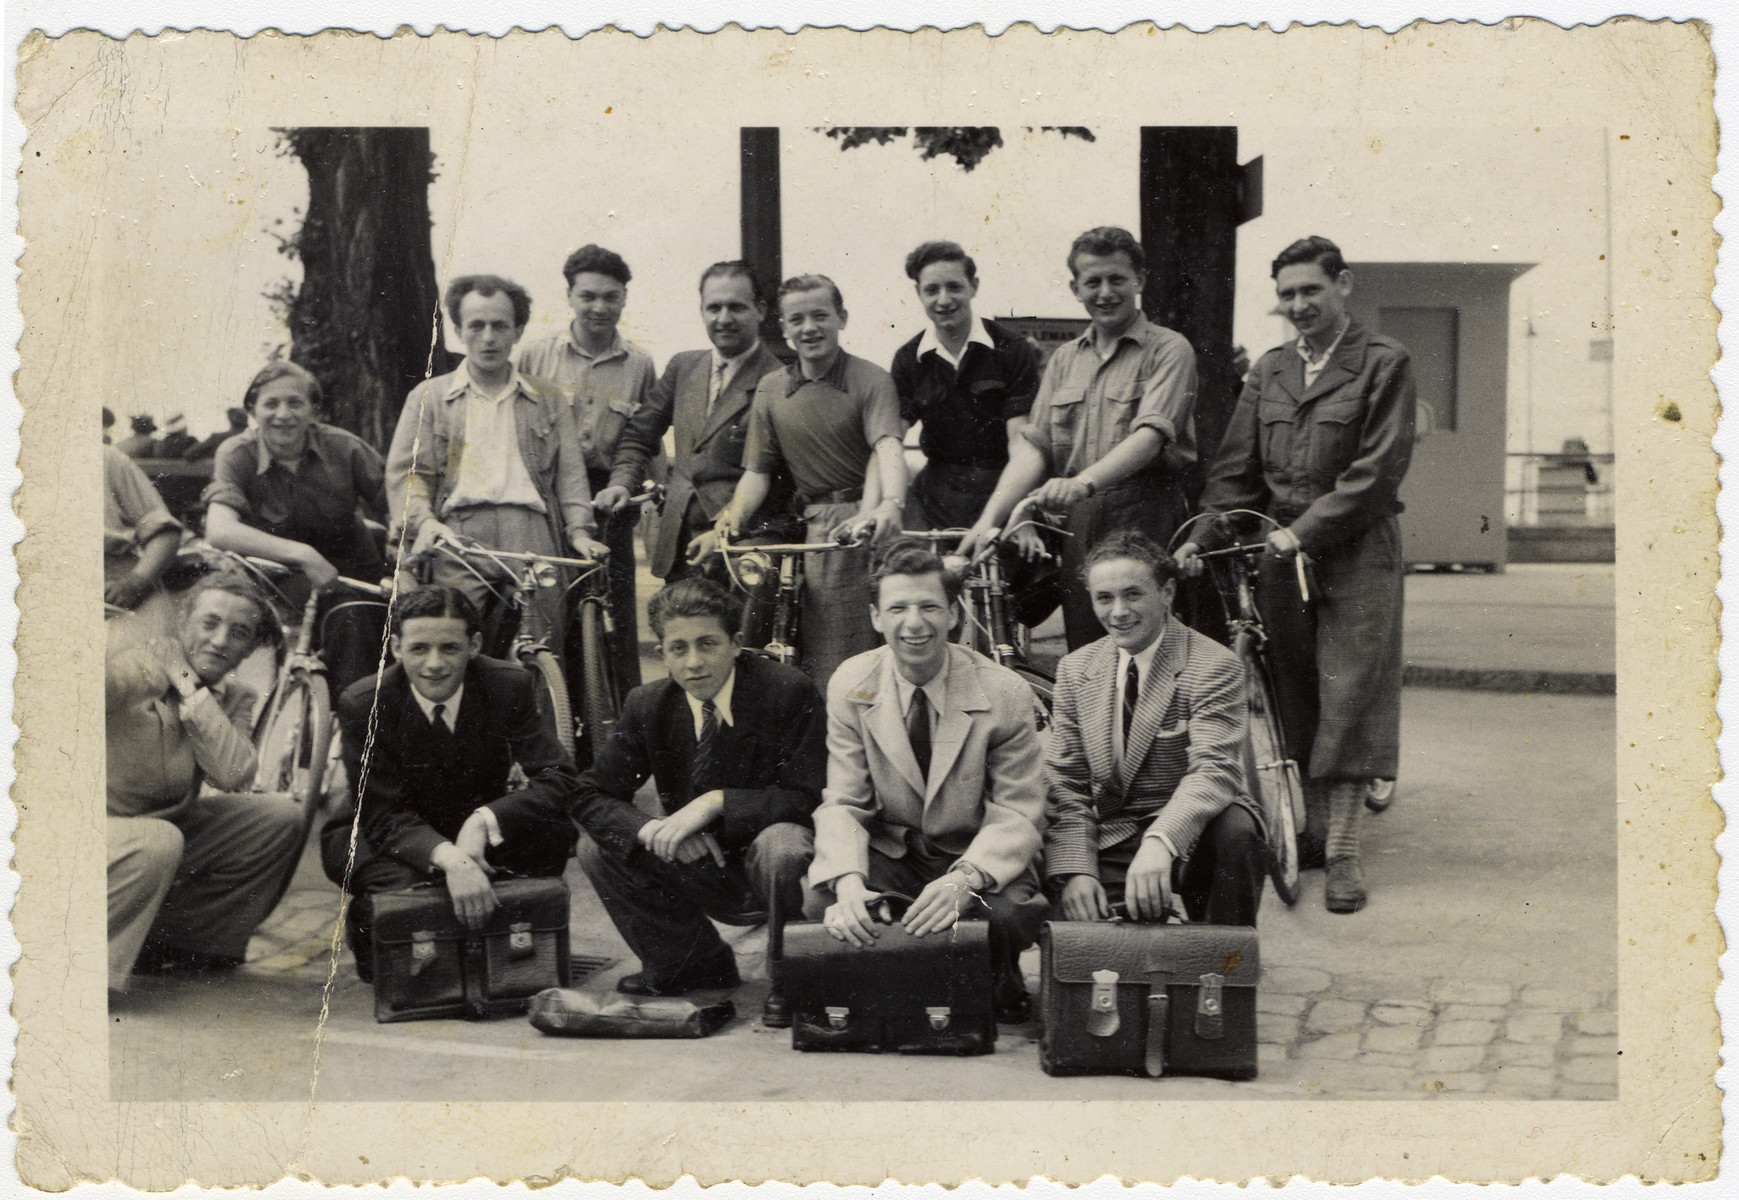 Group portrait of Jewish youth, some with briefcases, others on bicycles, in Geneva.  Among those pictured in the front row is Murray (Monek) Goldfinger and behind him is Henry Kolber.